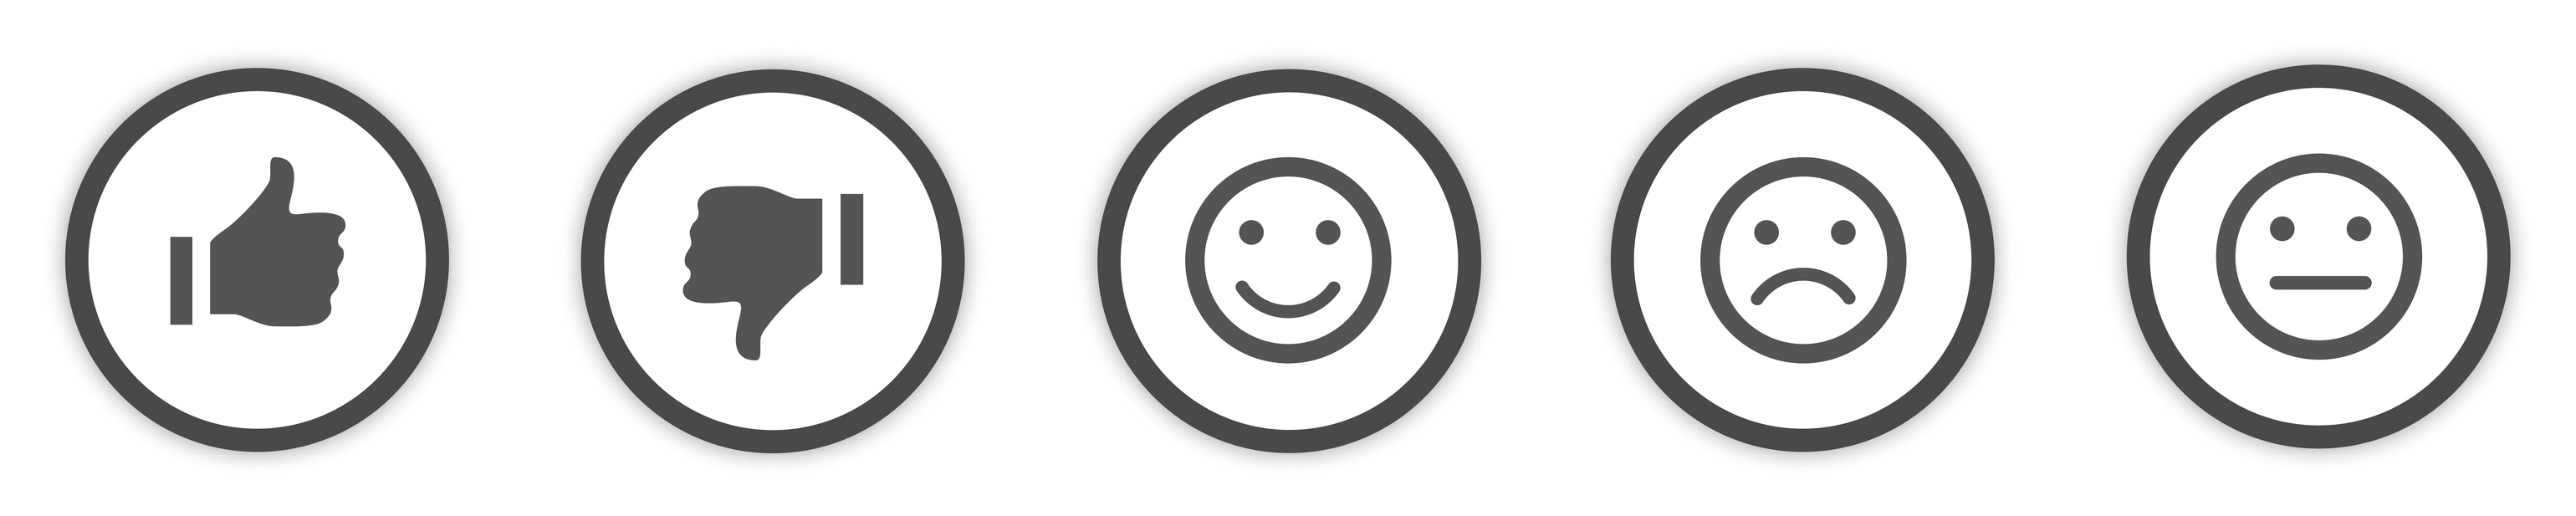 Icons Buttons grey Feedback